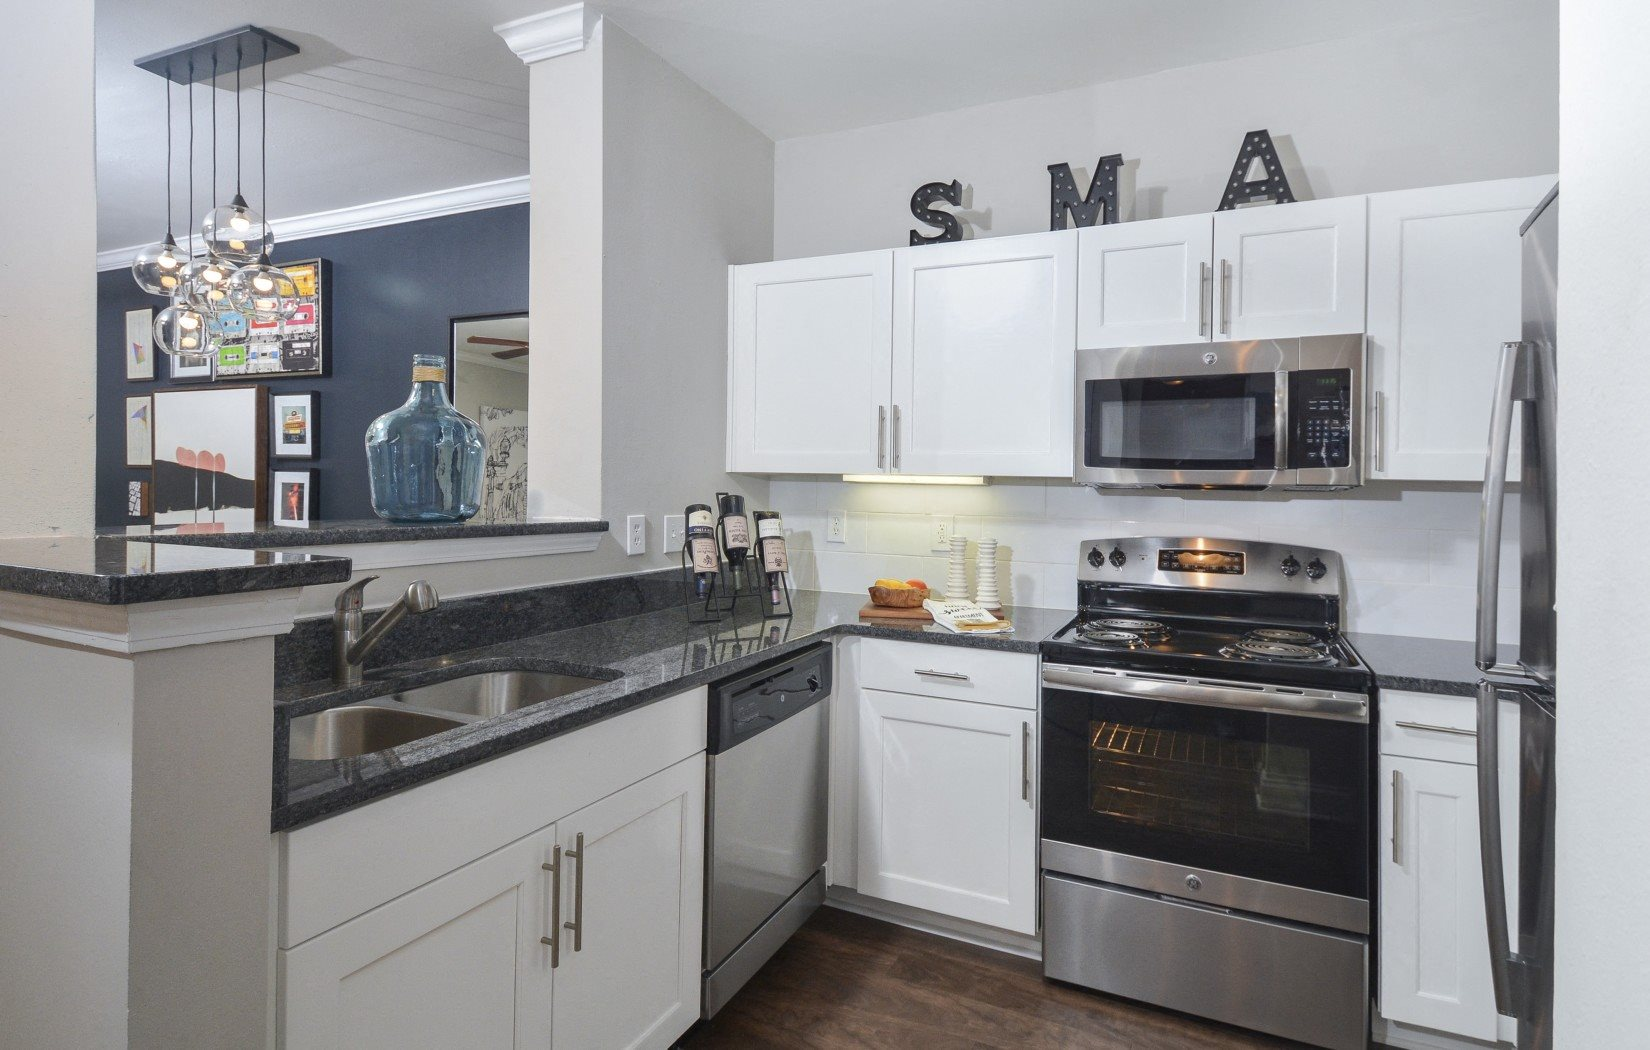 stainless steel appliances | Savannah Midtown Apartments in Atlanta, GA